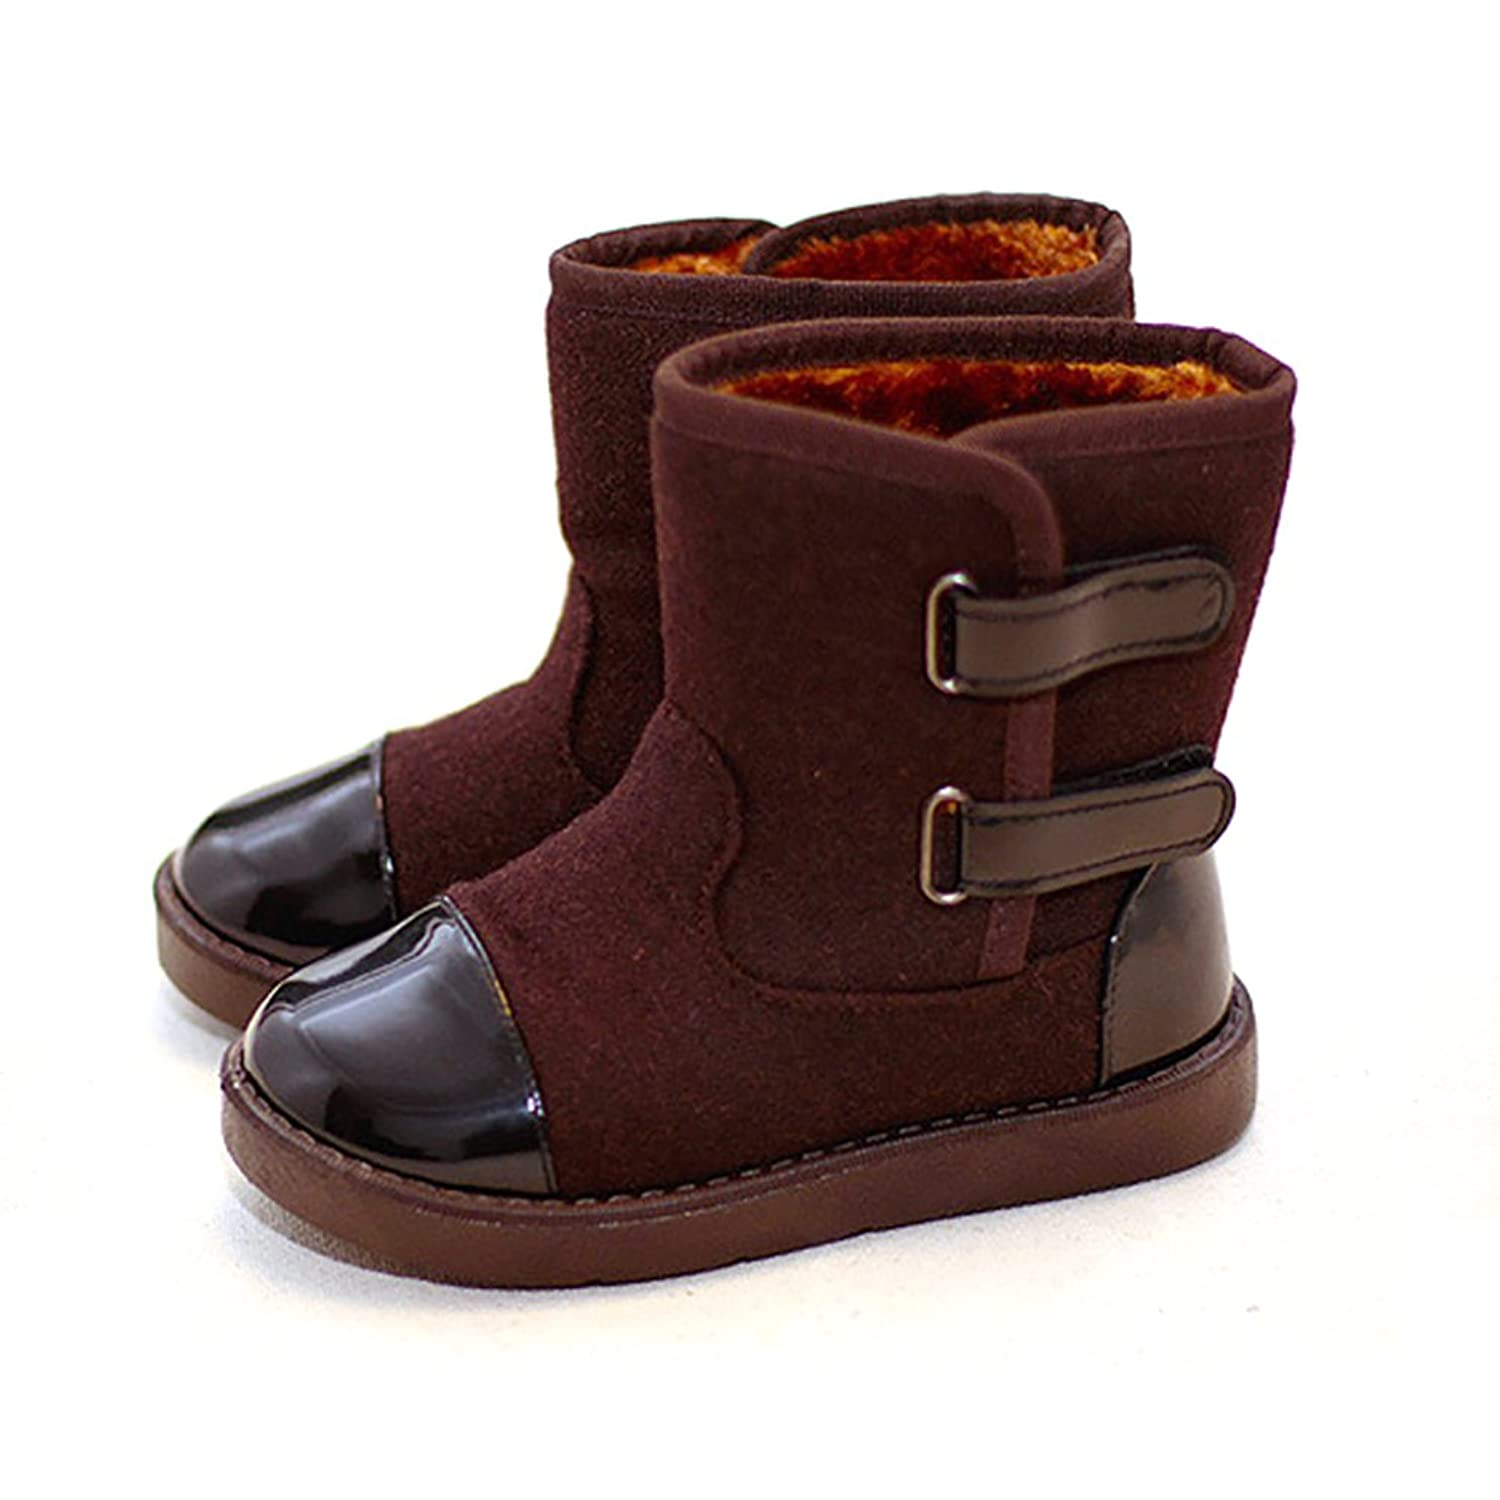 D.LIN Boys & Girls Alaska Waterproof Snow Boots (Toddler Little Kid):  Amazon.ca: Shoes & Handbags